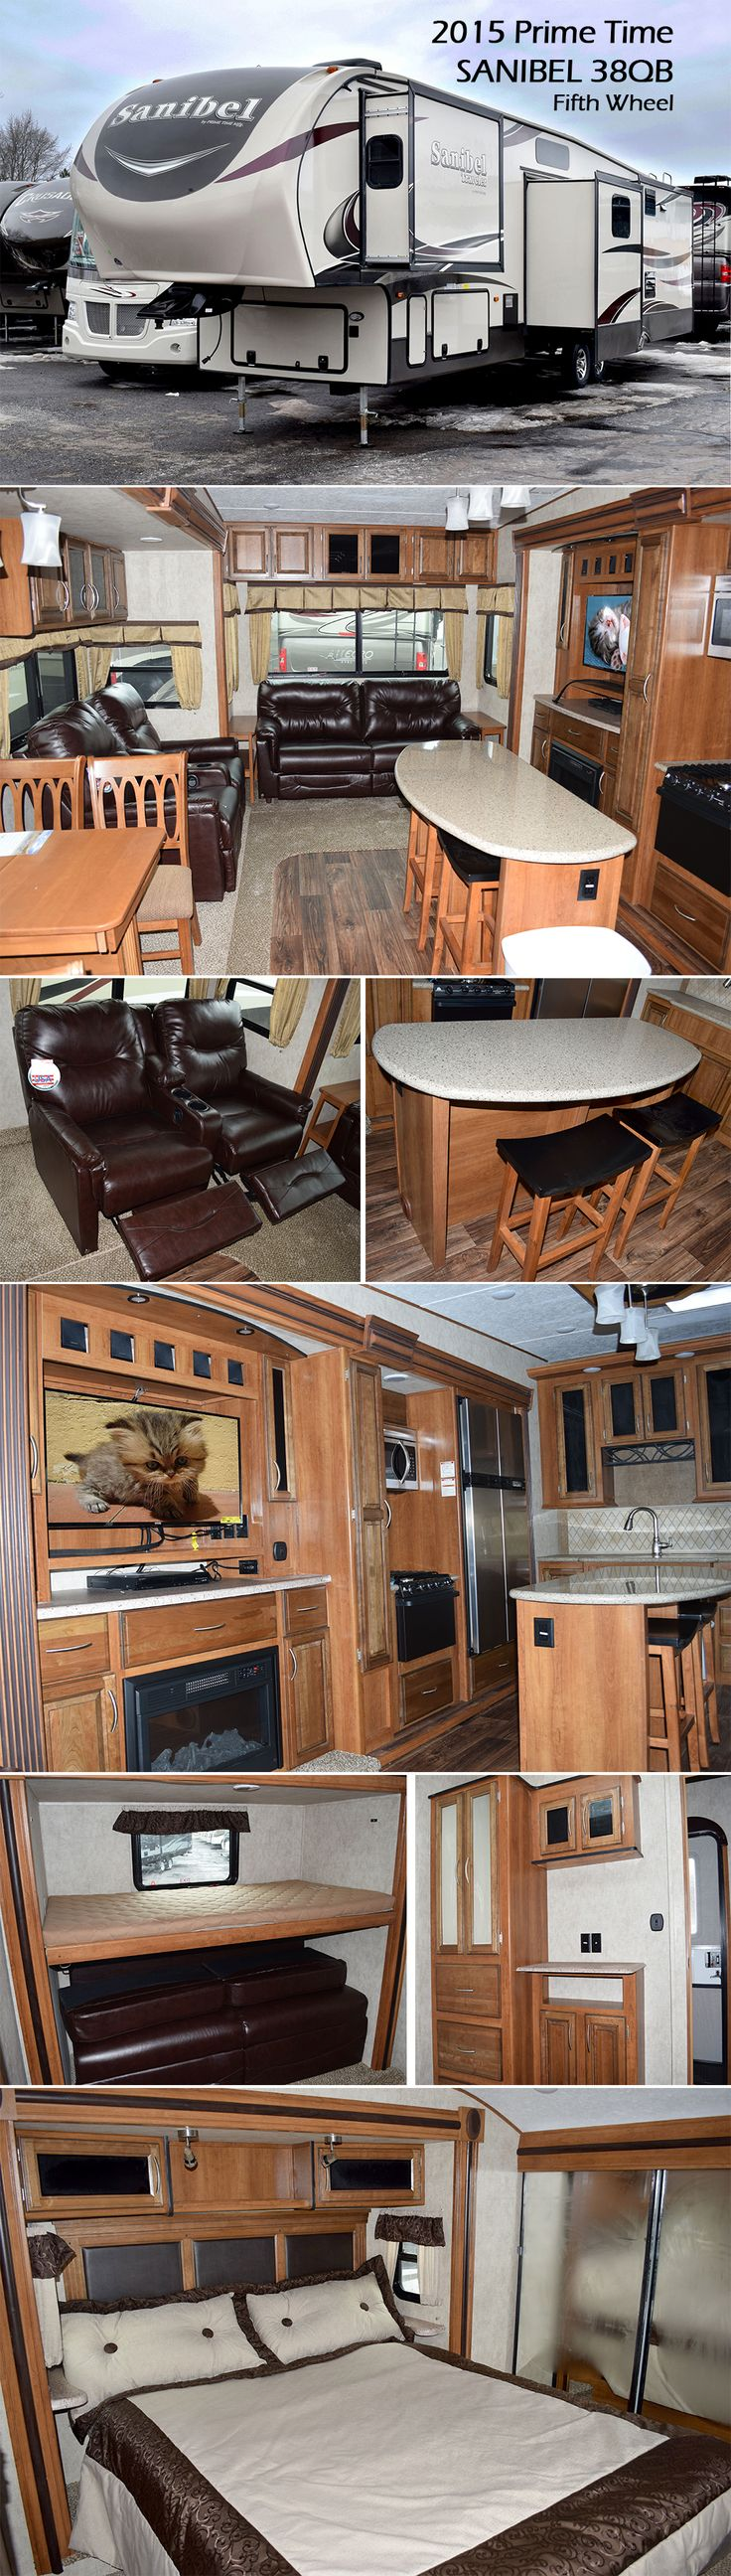 2015 Sanibel 38QB Fifth Wheel by Prime Time As you enter the fifth wheel, straight in front of you is a bedroom. Along one side of the room there is a slide with a flip up bunk above a sleep & play sofa. Across from the sofa you will find an entertainment center and a wardrobe. In the main living area there is theater seating, a hide-a-bed sofa and an entertainment center with a cozy fireplace. In the middle of the large kitchen there is an island with bar stools.